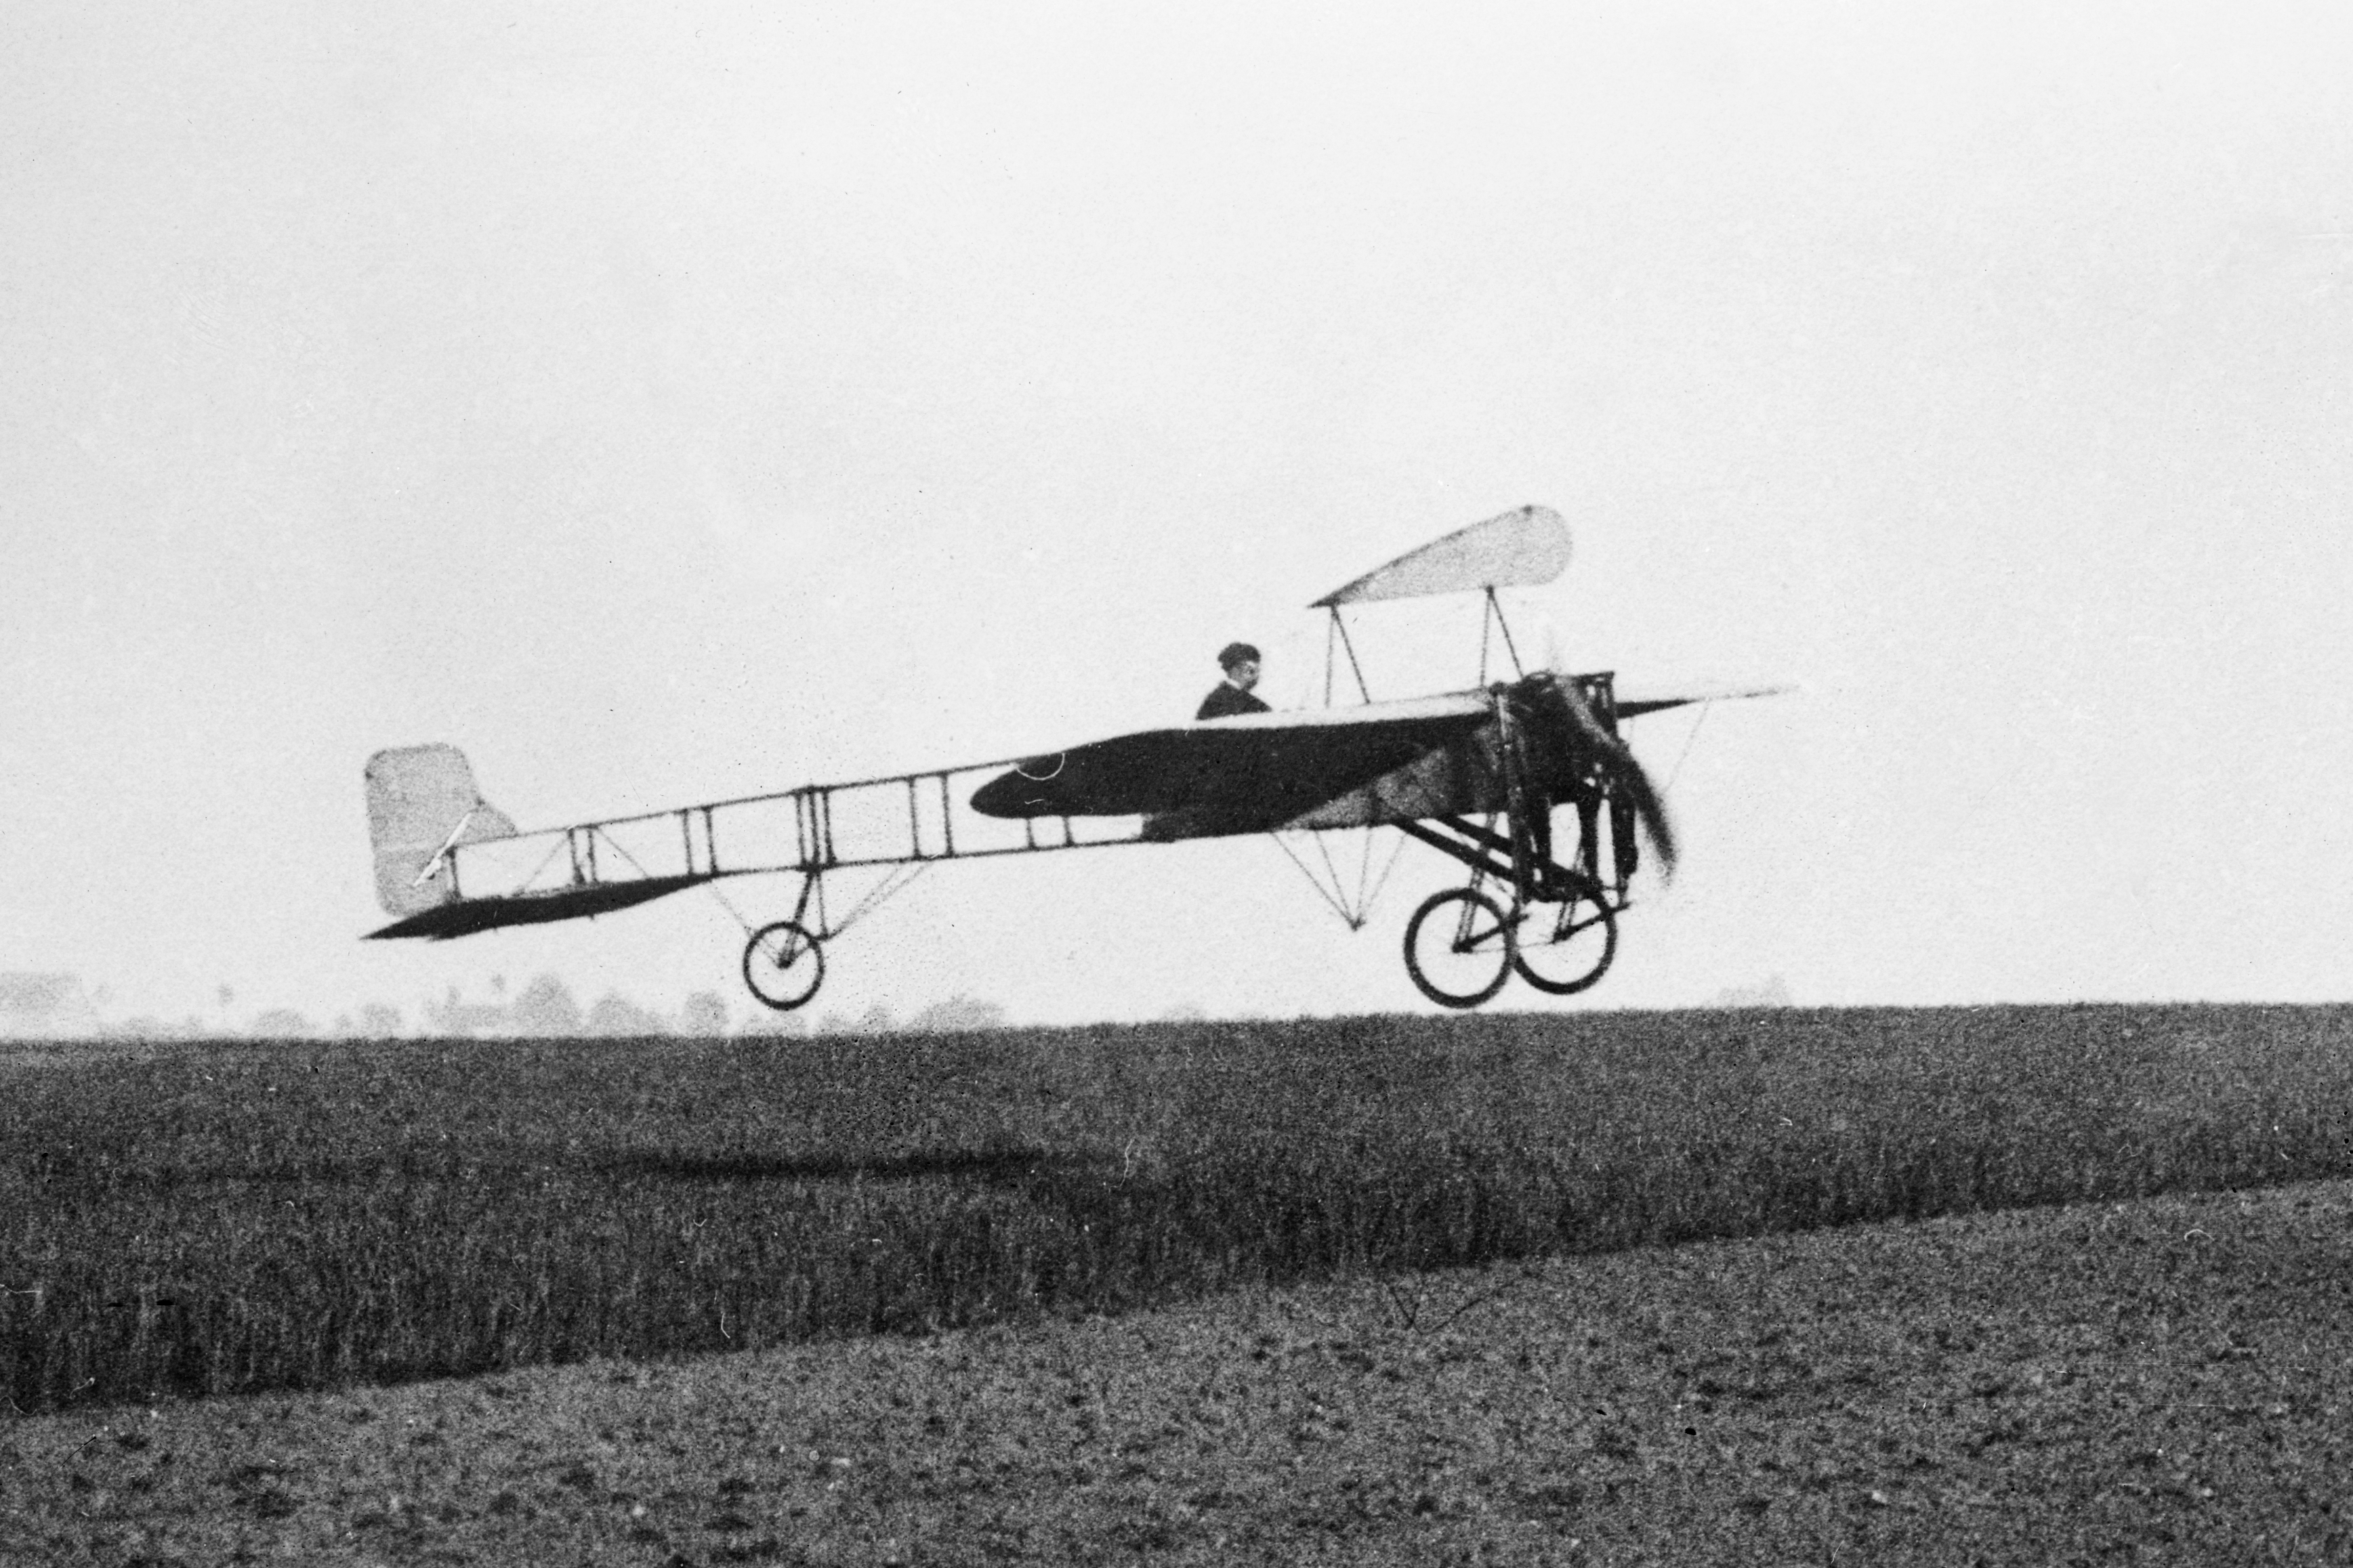 Louis Blériot in flight over a field in his Type XI aircraft. Photo taken in May 1909.